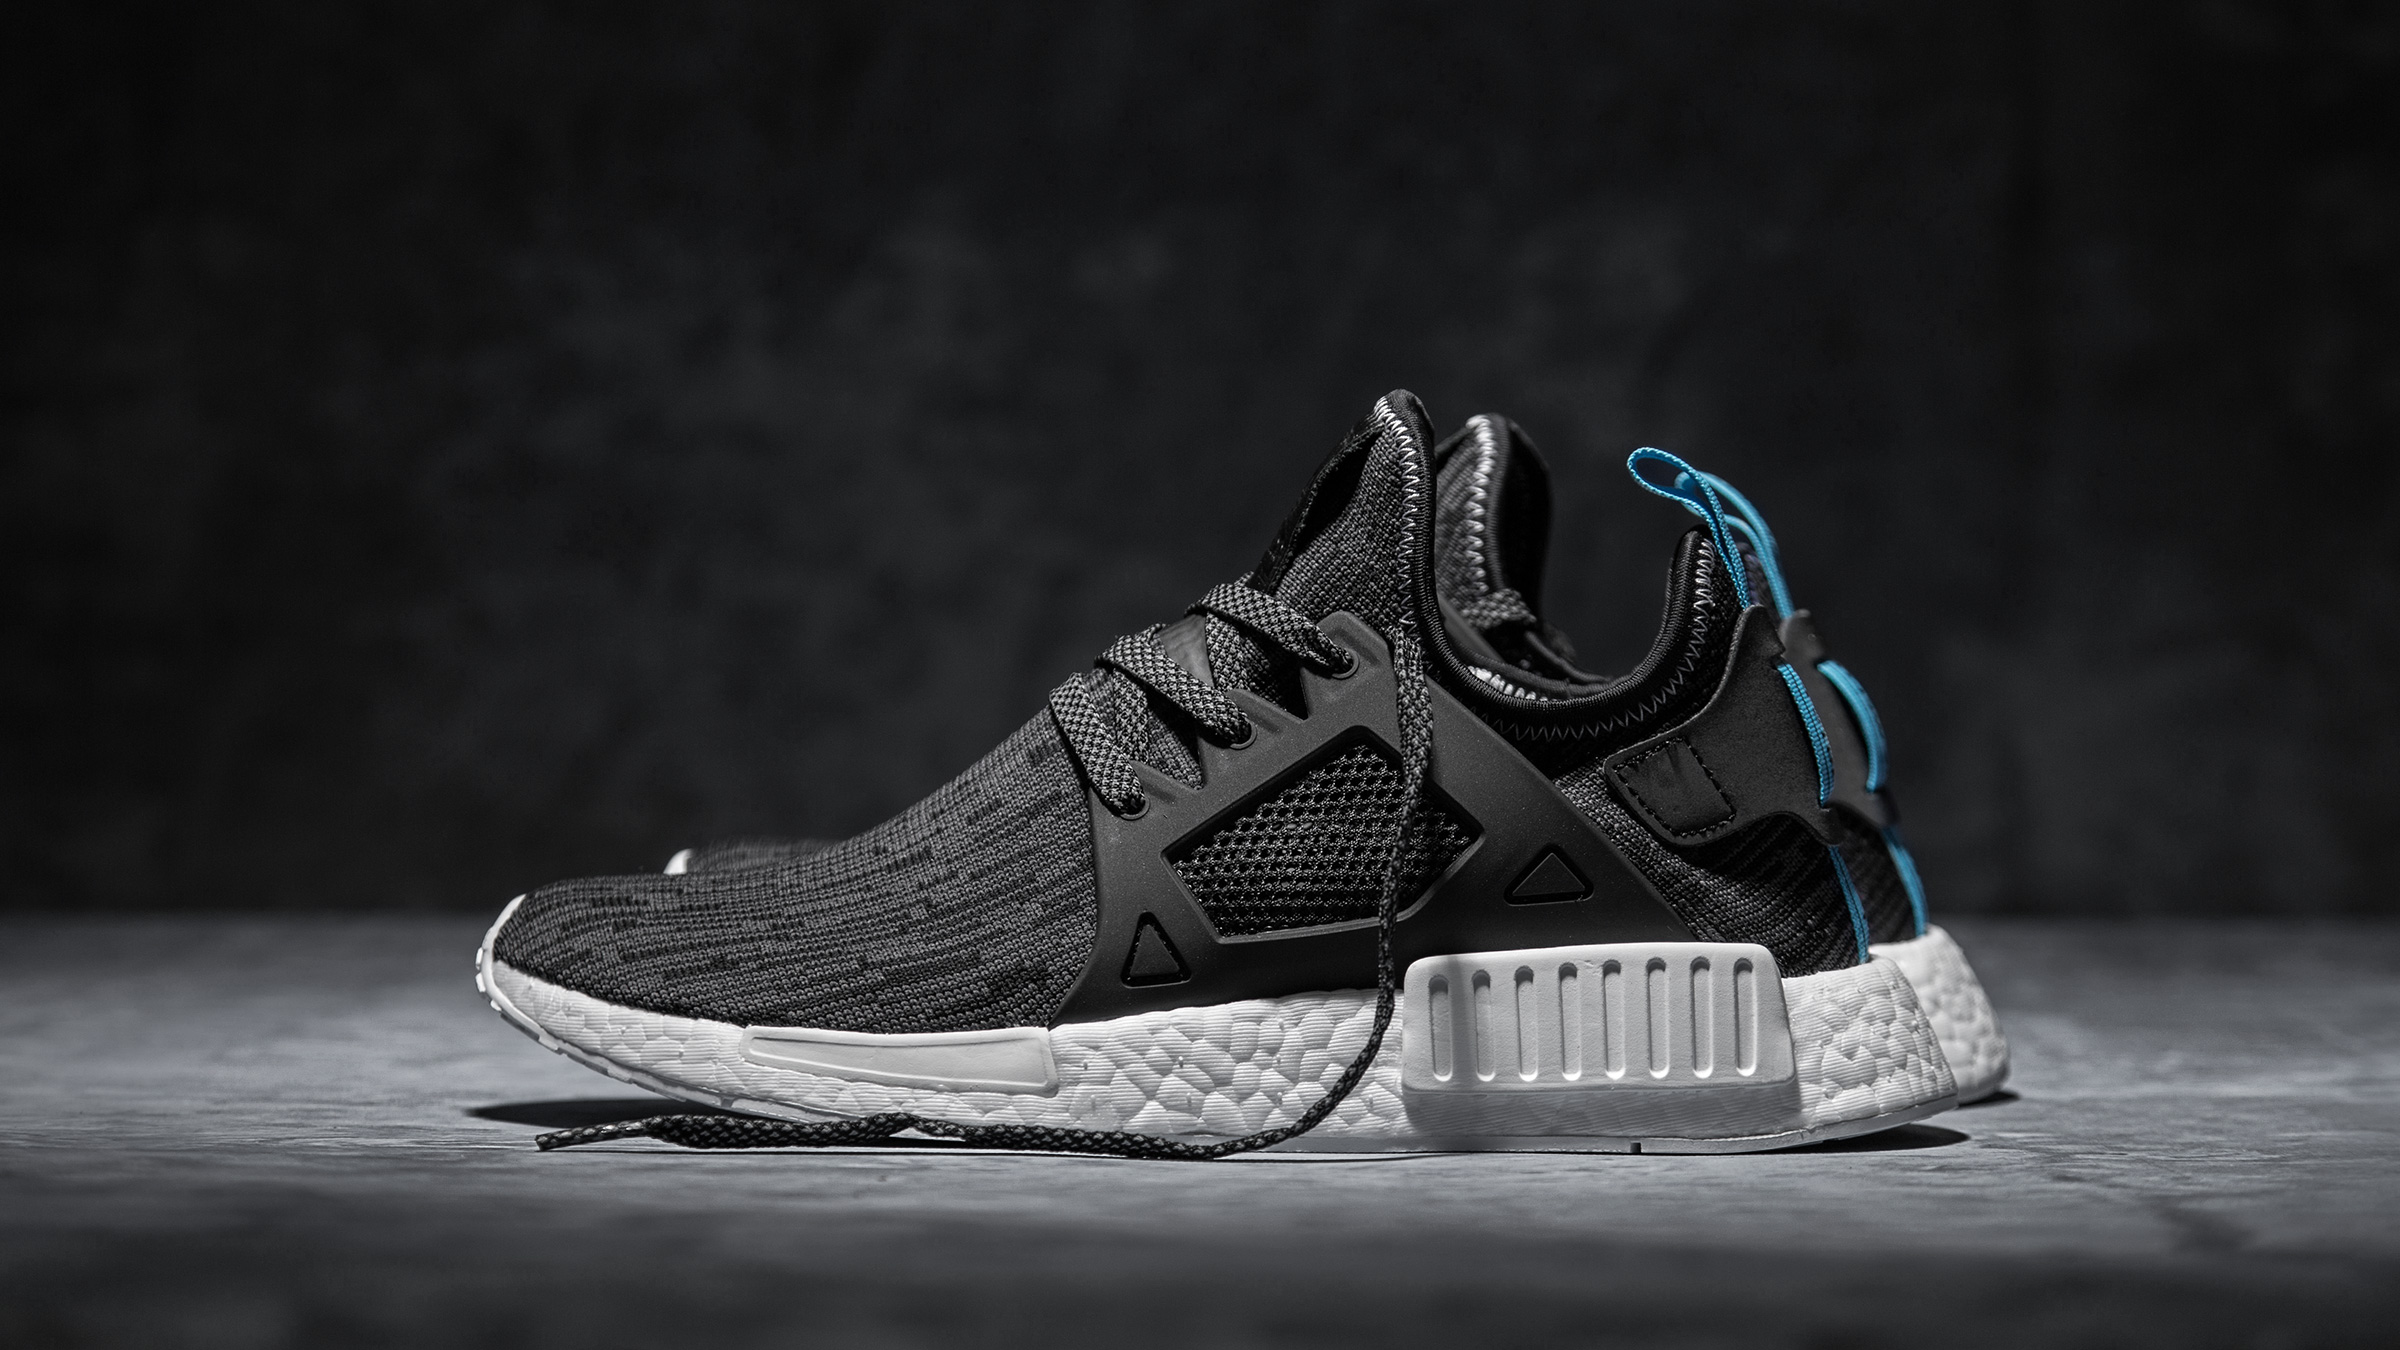 nmd_xr1_s32215_2709_main_